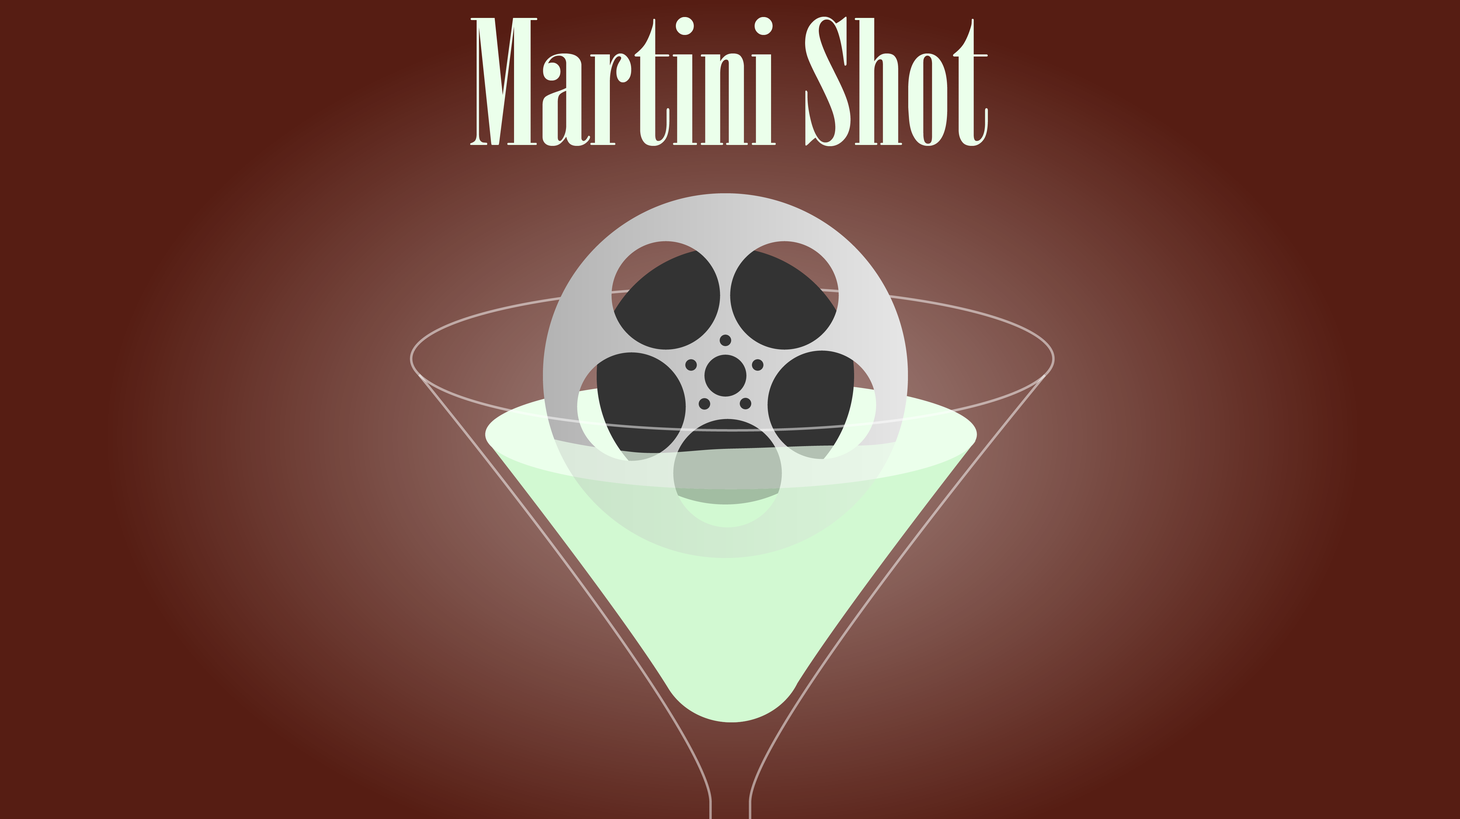 On today's Martini Shot, we sort out the difference between writers who are good with story and writers who are good with jokes, and actors who can sing but aren't singers, and what you need to do to stay employed.